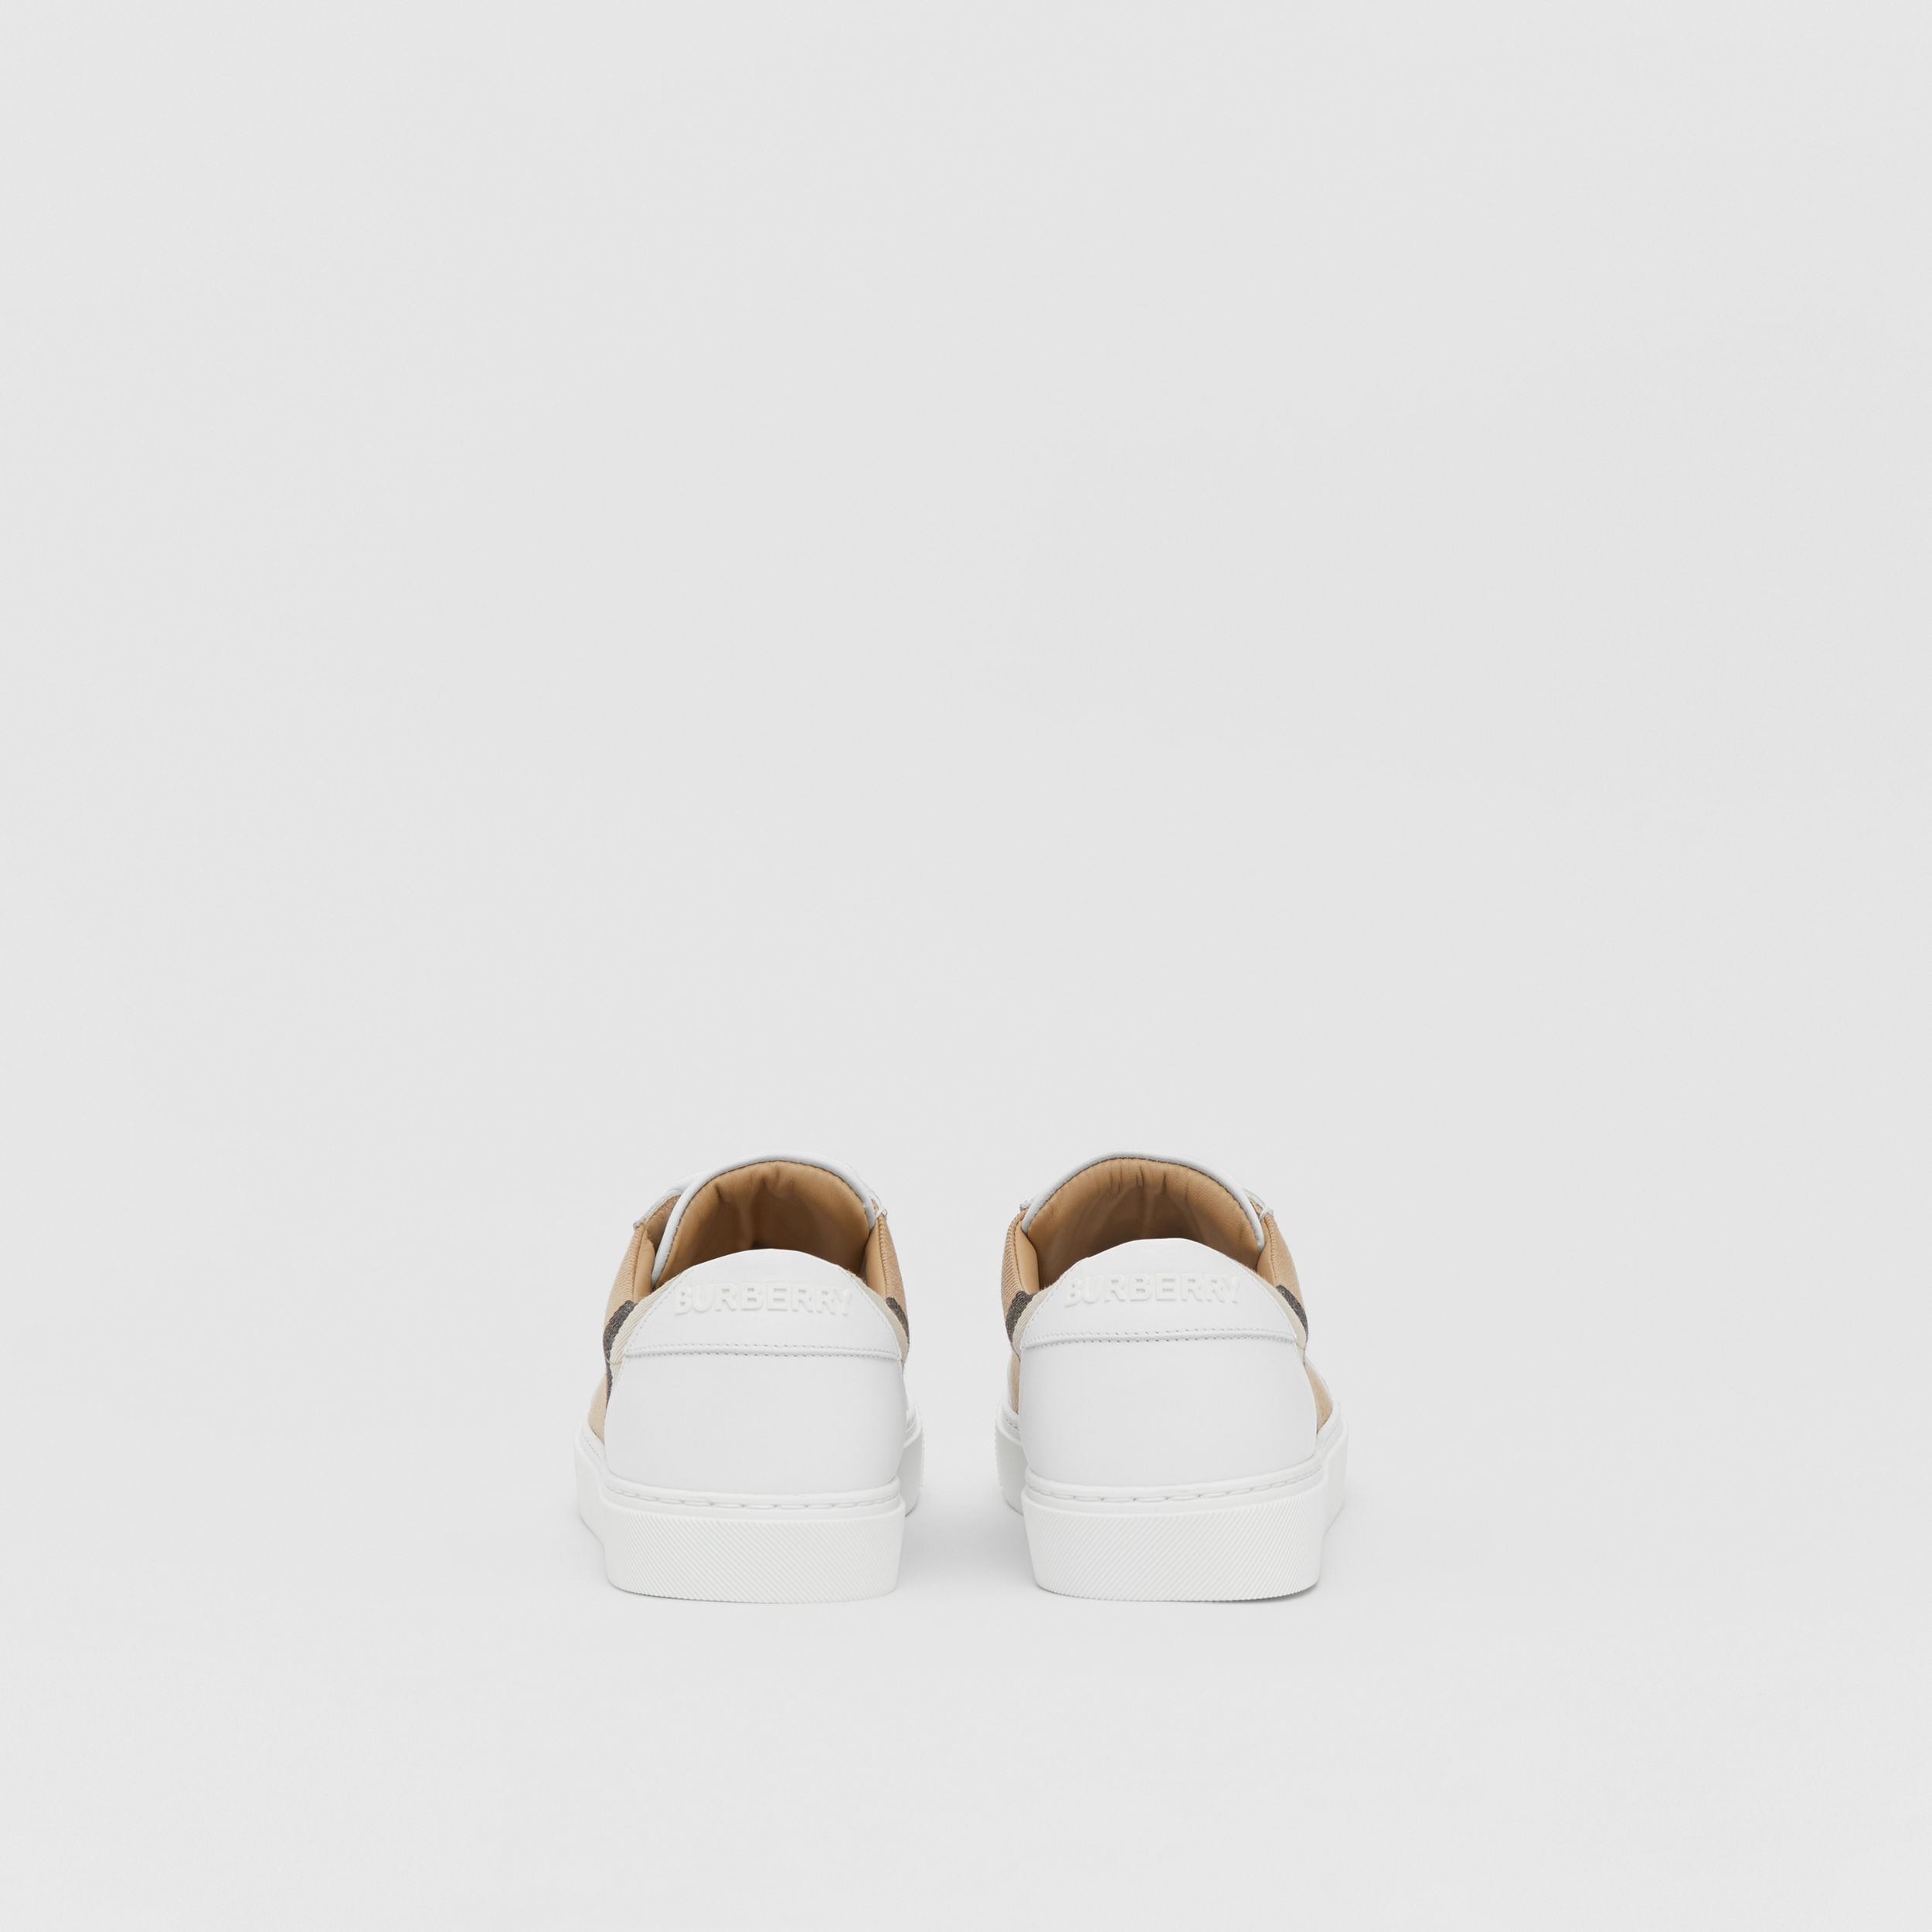 House Check and Leather Sneakers in Optic White - Women | Burberry - 4